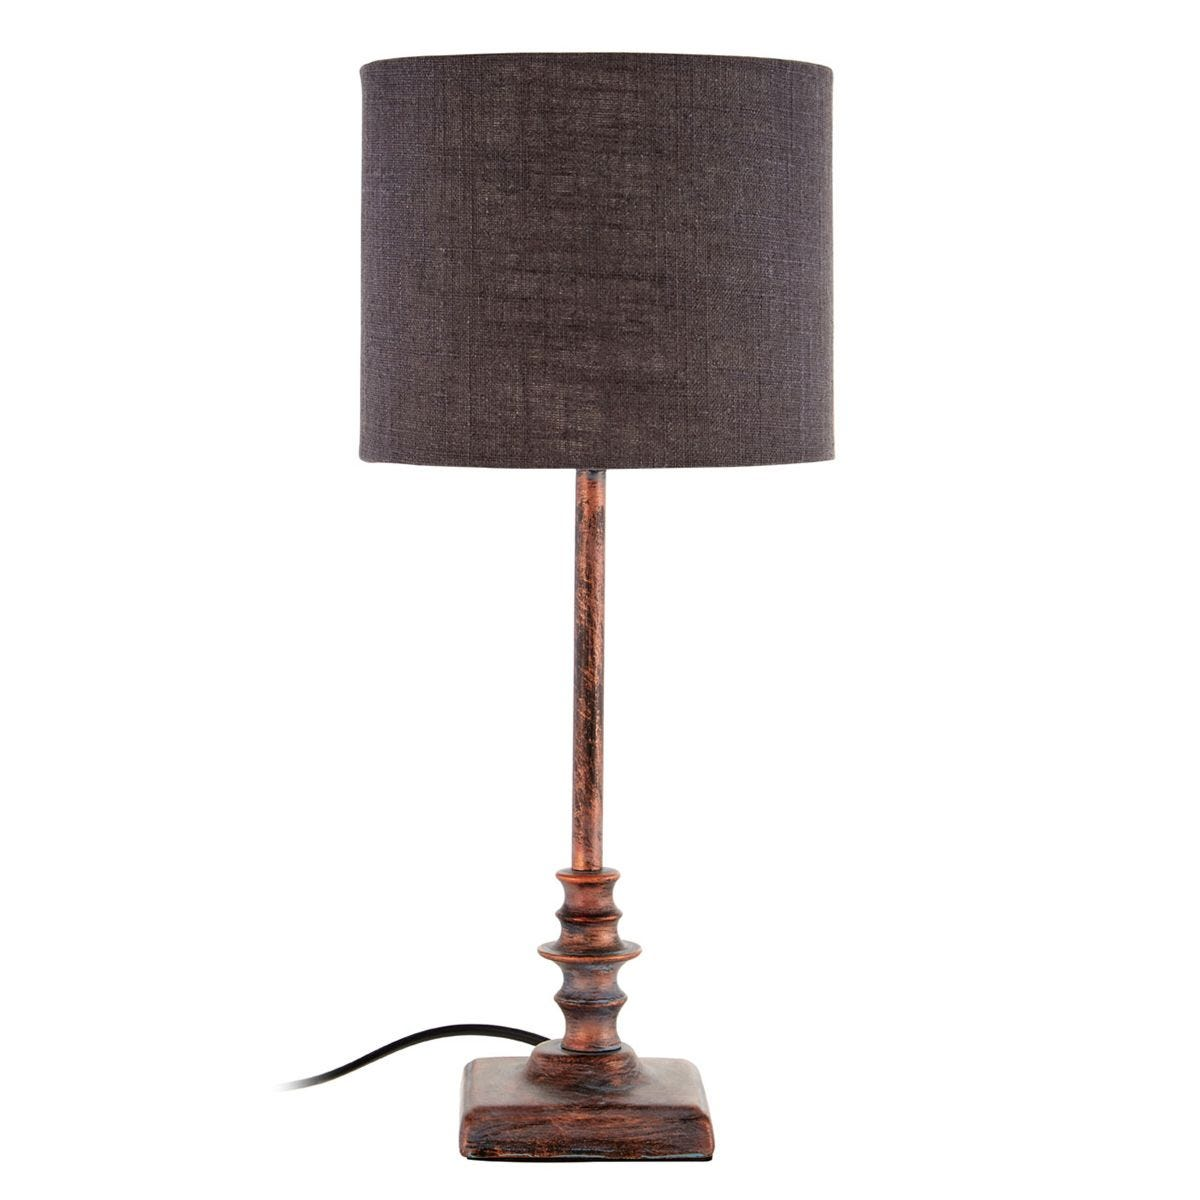 Premier Housewares Adele Table Lamp with Metal Distressed Copper Base & Grey Fabric Shade